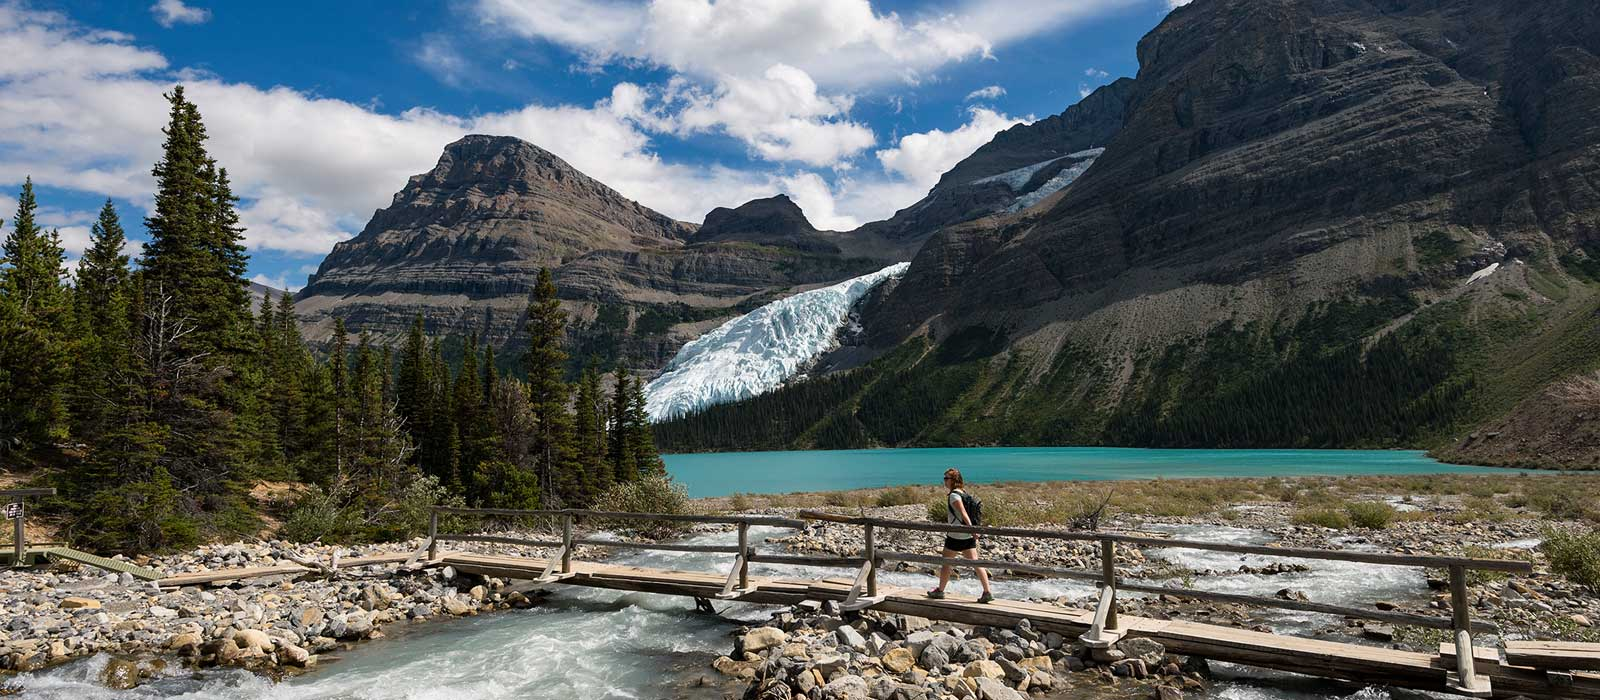 Hiker crossing wooden bridge over river beside turquoise lake, mountain glacier in background